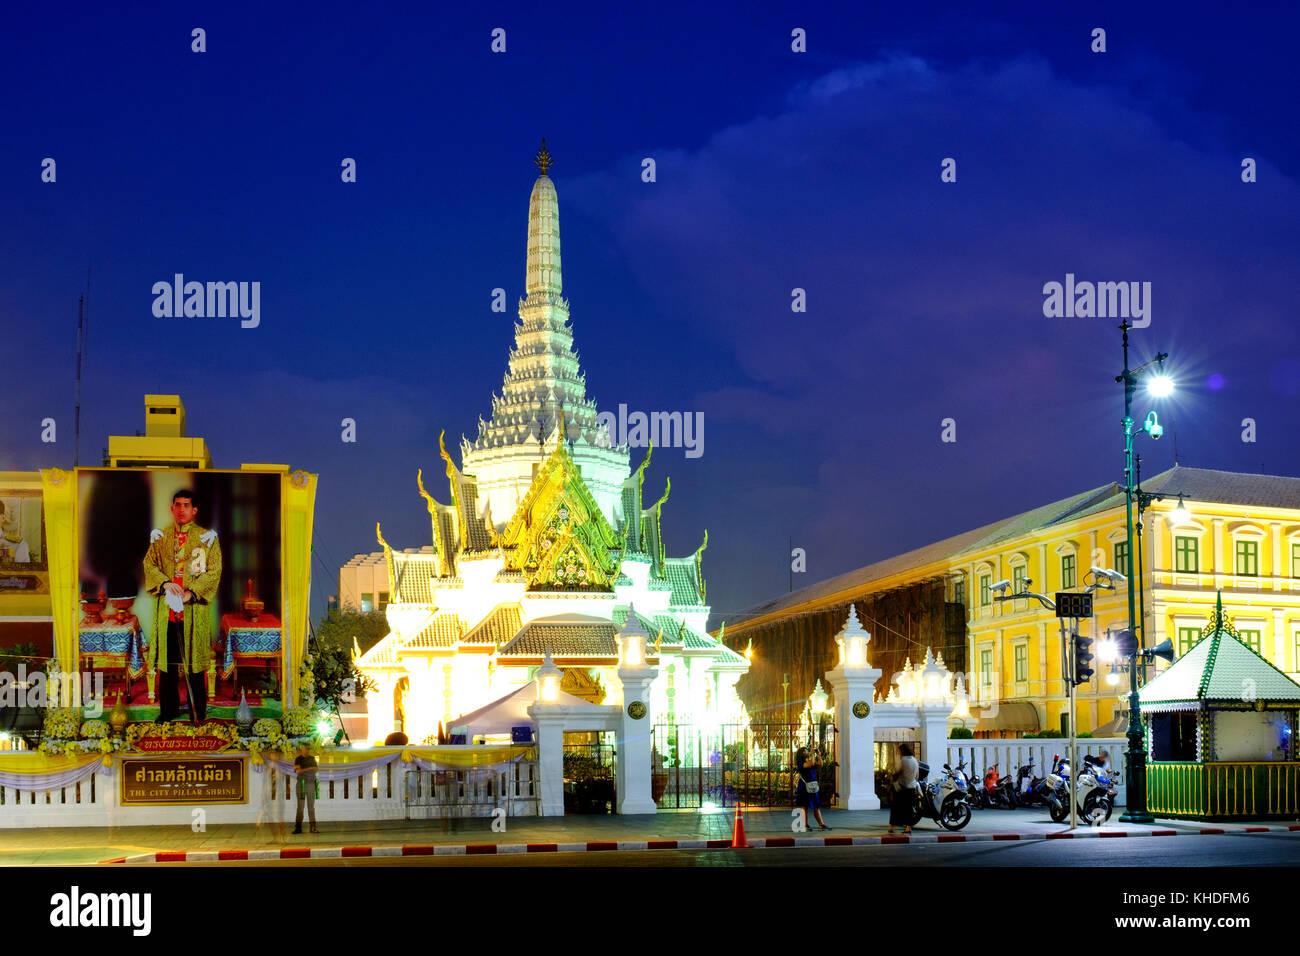 City pillar shrine, Bangkok, Thailand Stock Photo